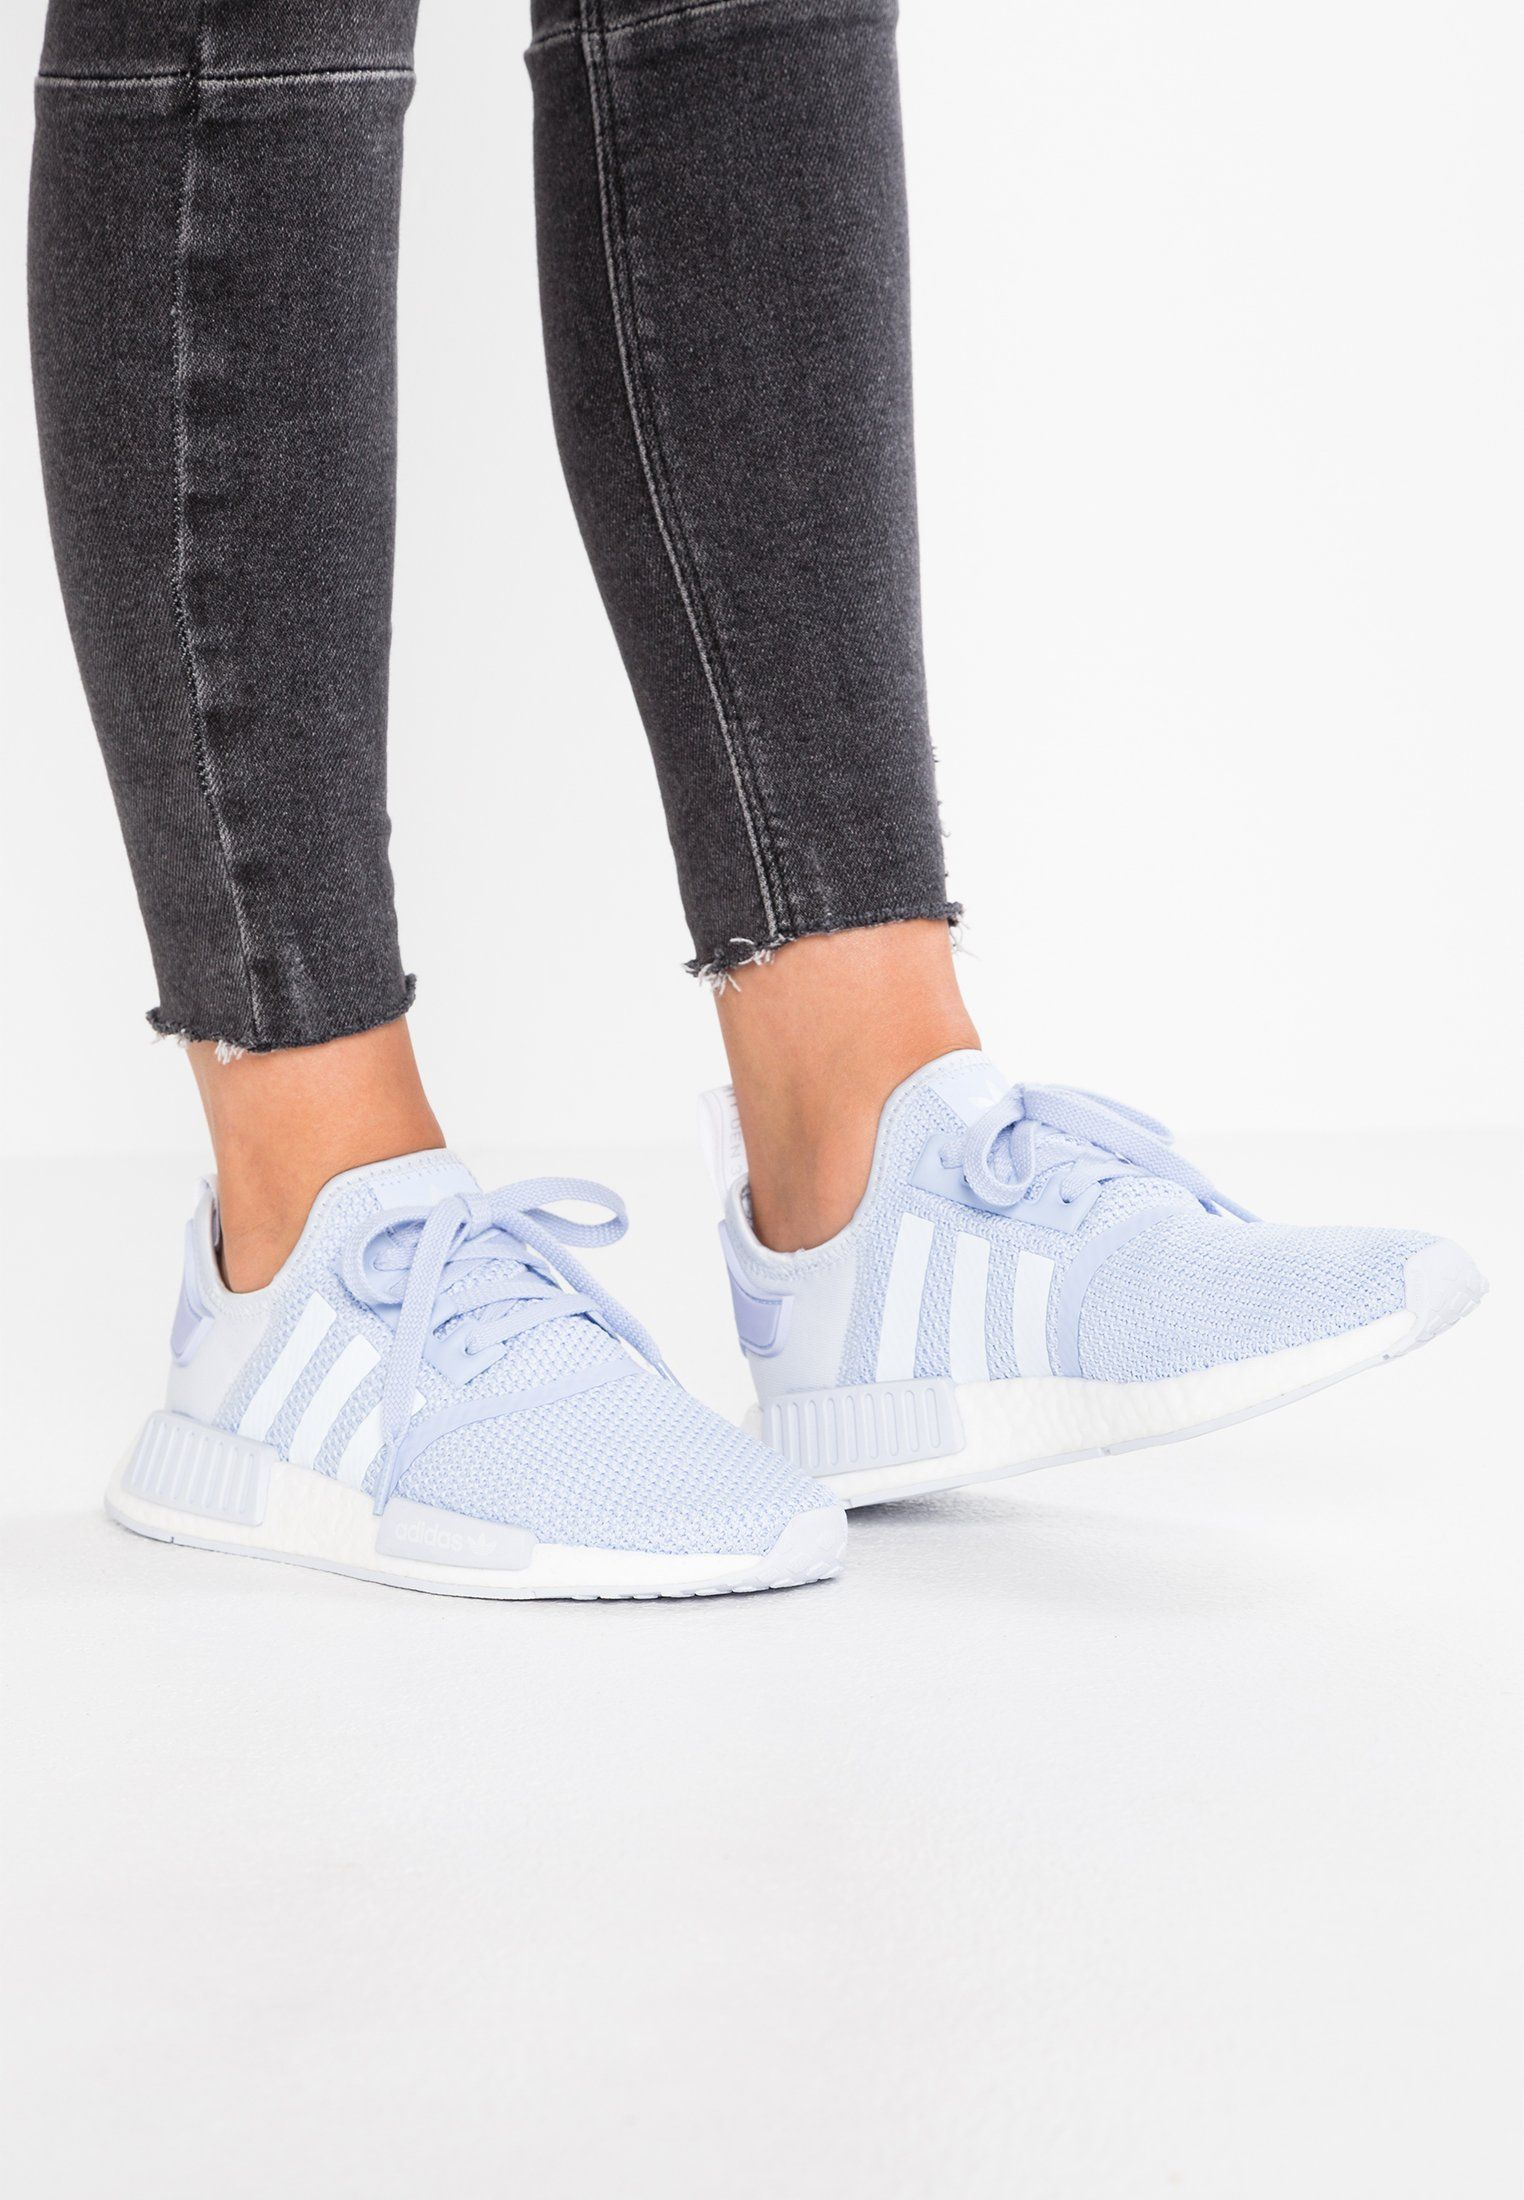 low priced 7ef3f 3bc25 Nmd R1, Footwear, Blue, Shoes, Adidas Originals, Adidas Sneakers, Fashion